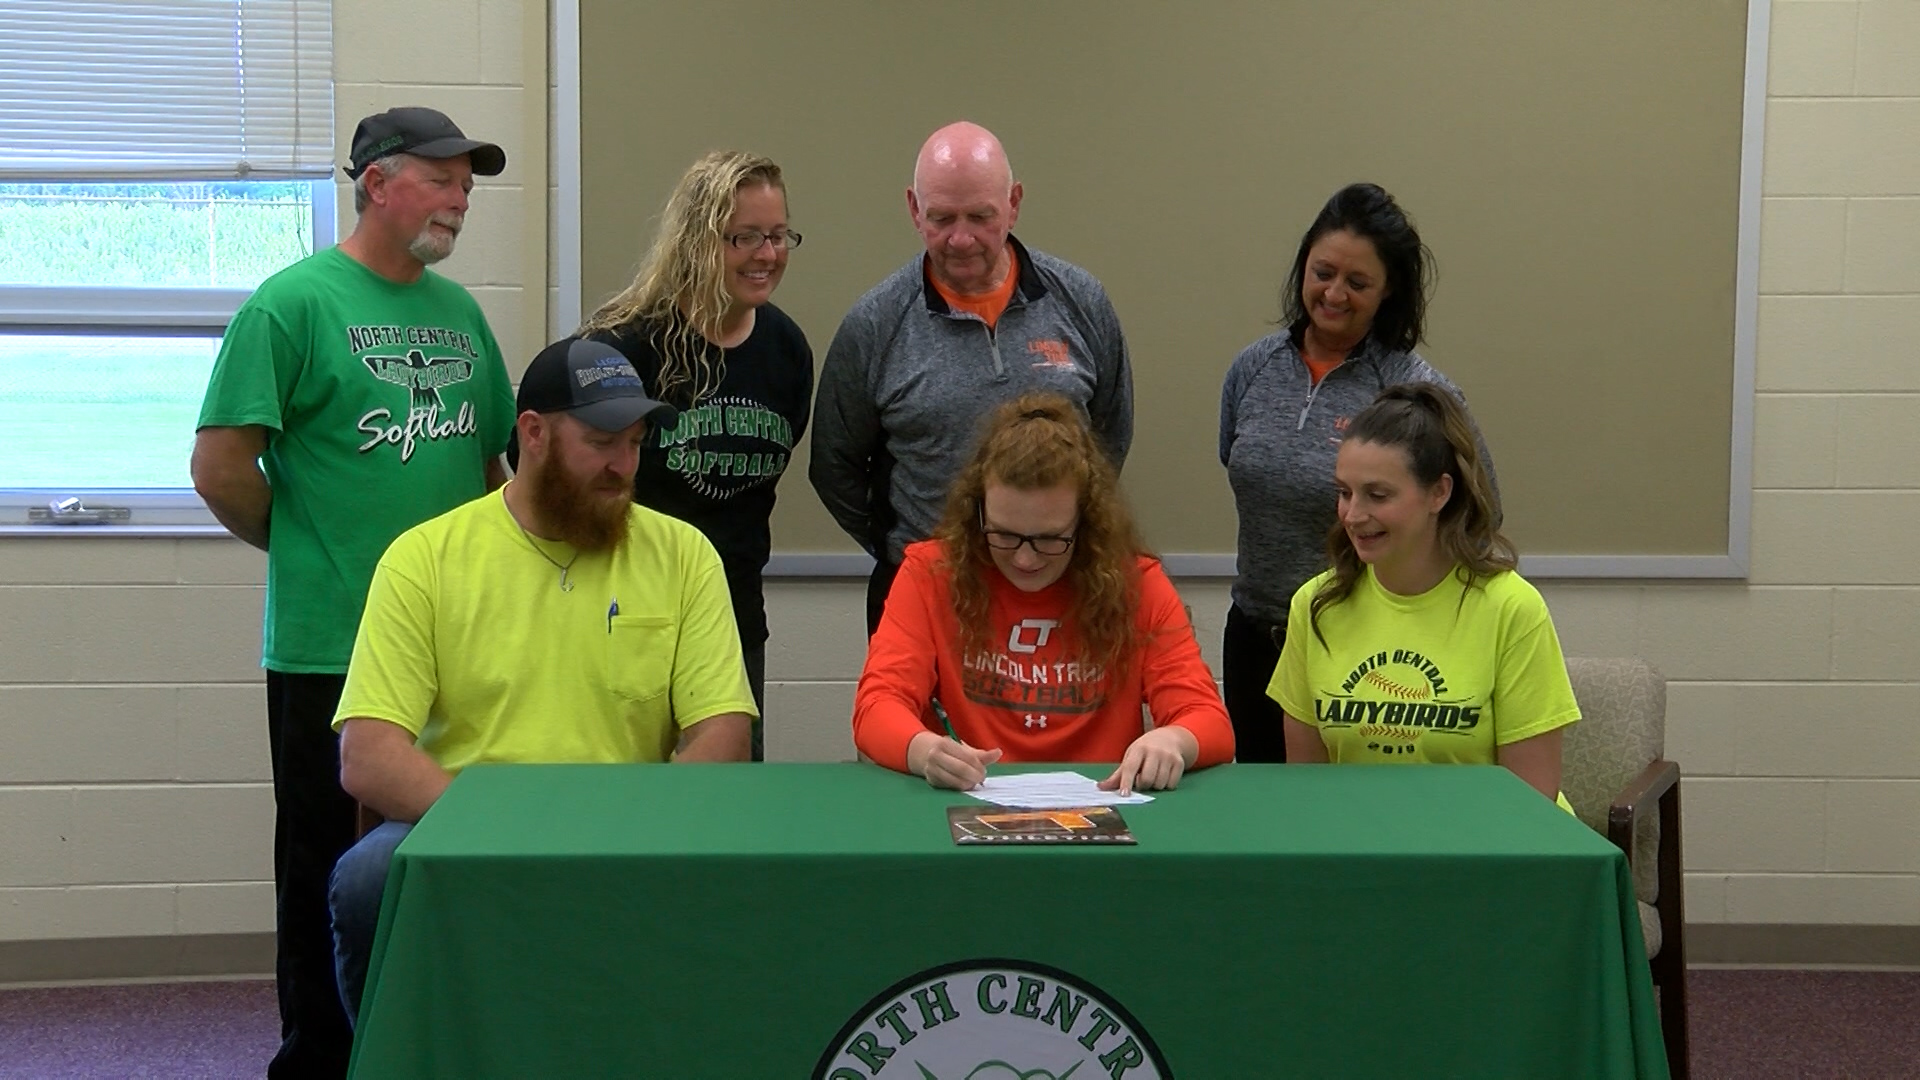 MANNING SIGNS WITH LINCOLN TRAIL_1557975862654.jpg.jpg